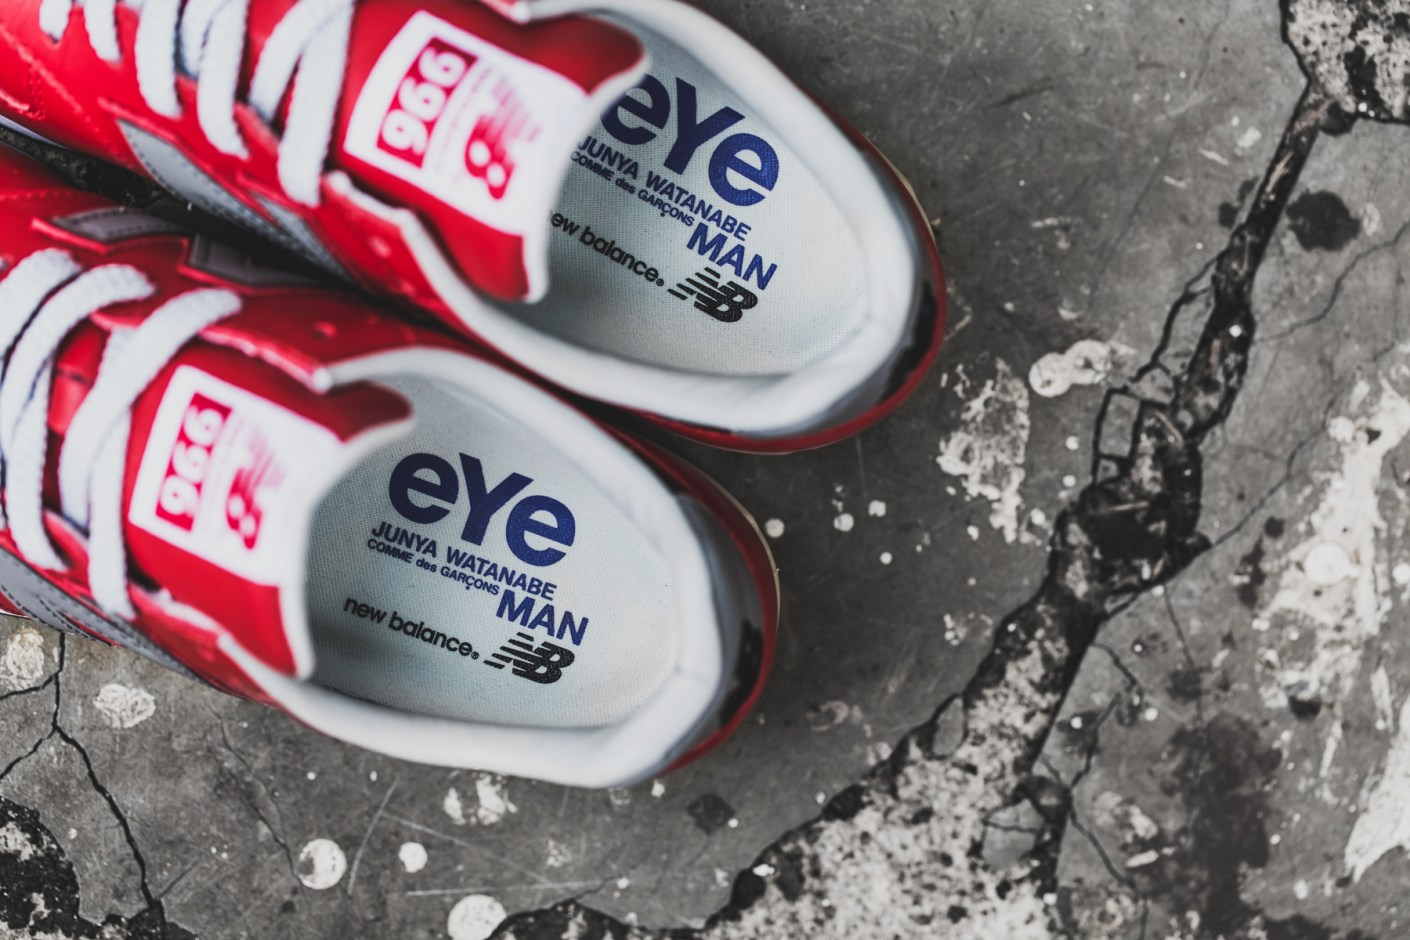 Image of A Closer Look at the eYe COMME des GARÇONS Junya Watanabe Man x New Balance MRL996